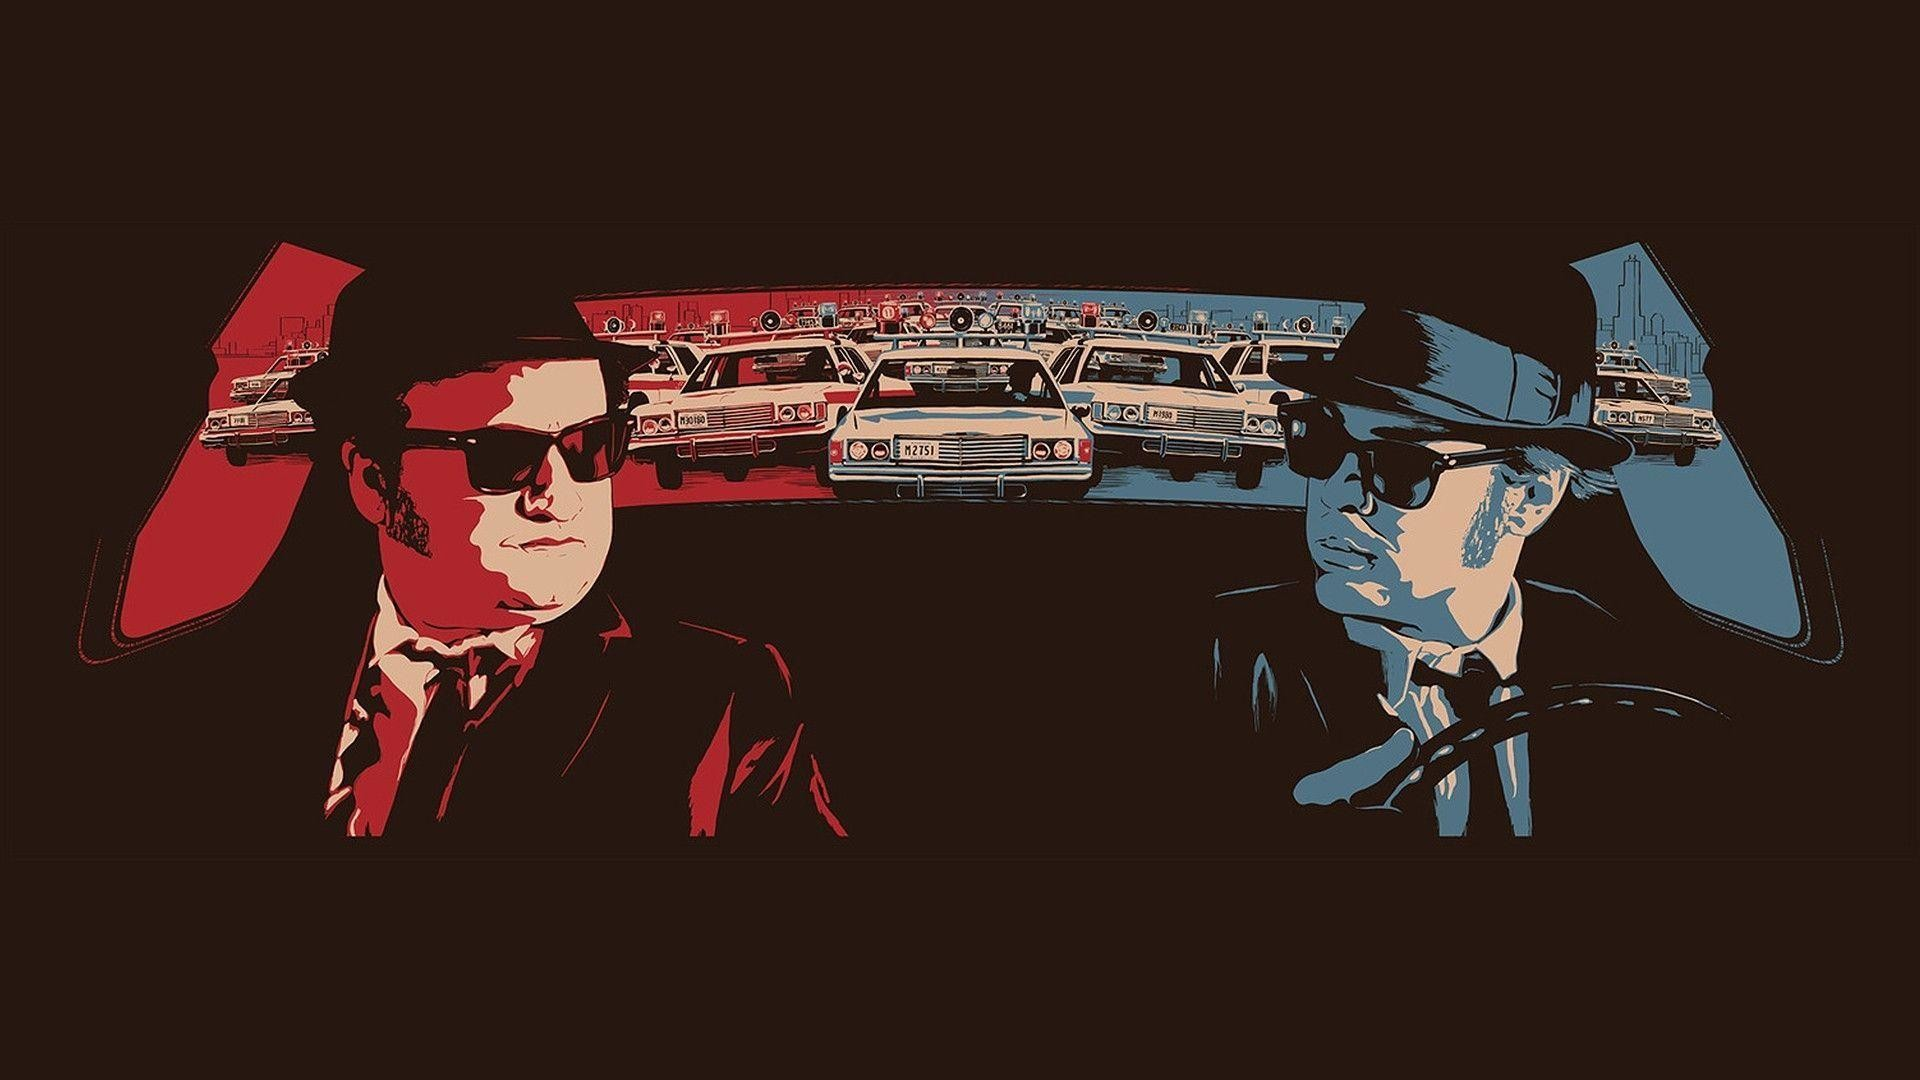 Blues brothers wallpaper 65 images 1920x1080 the blues brothers wallpaper malvernweather Image collections